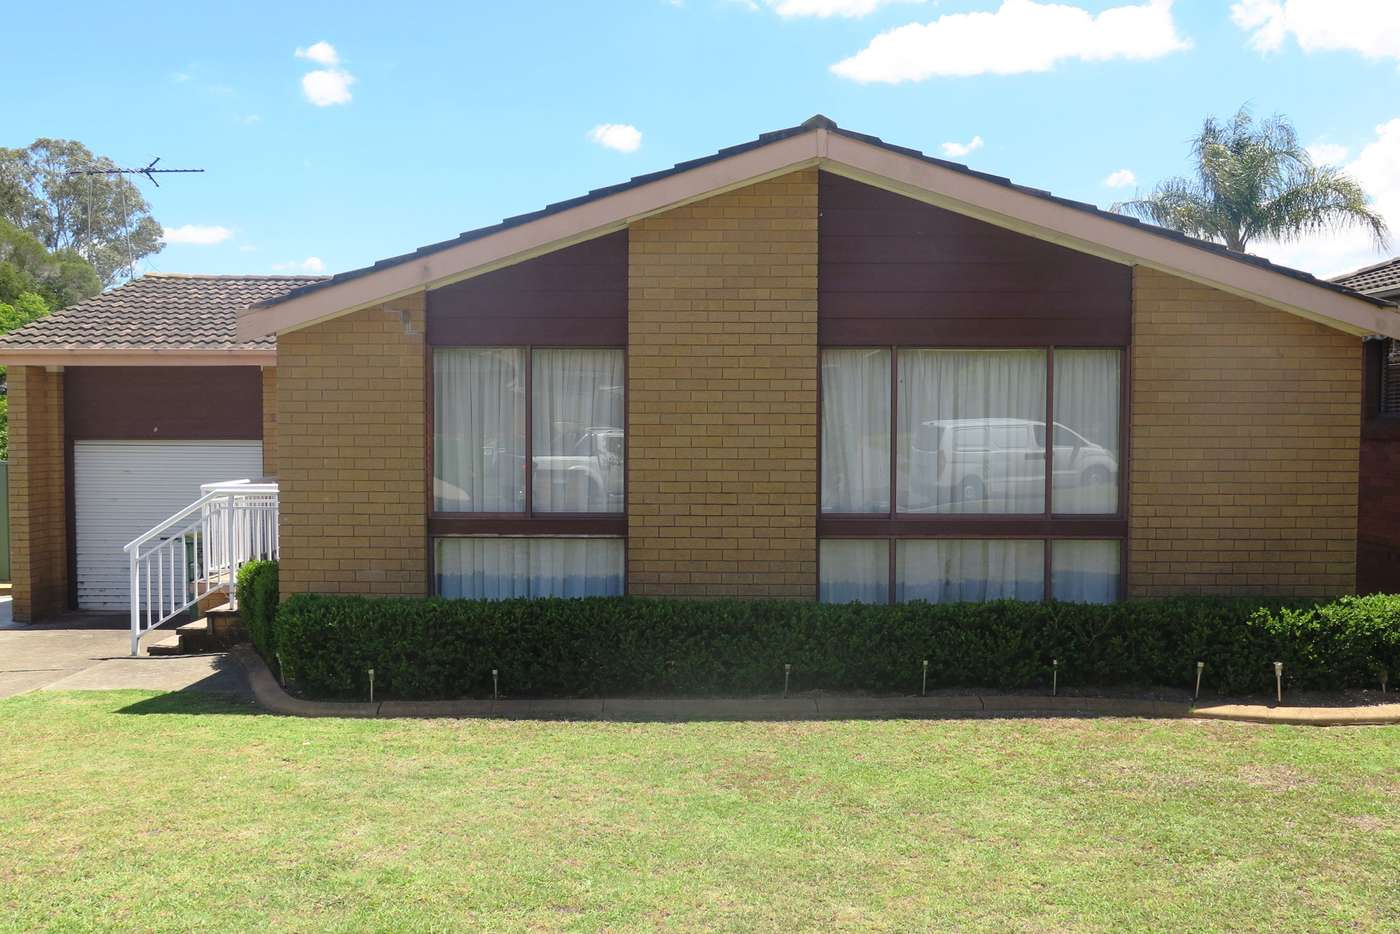 Main view of Homely house listing, 20 Benaud Court, St Clair NSW 2759